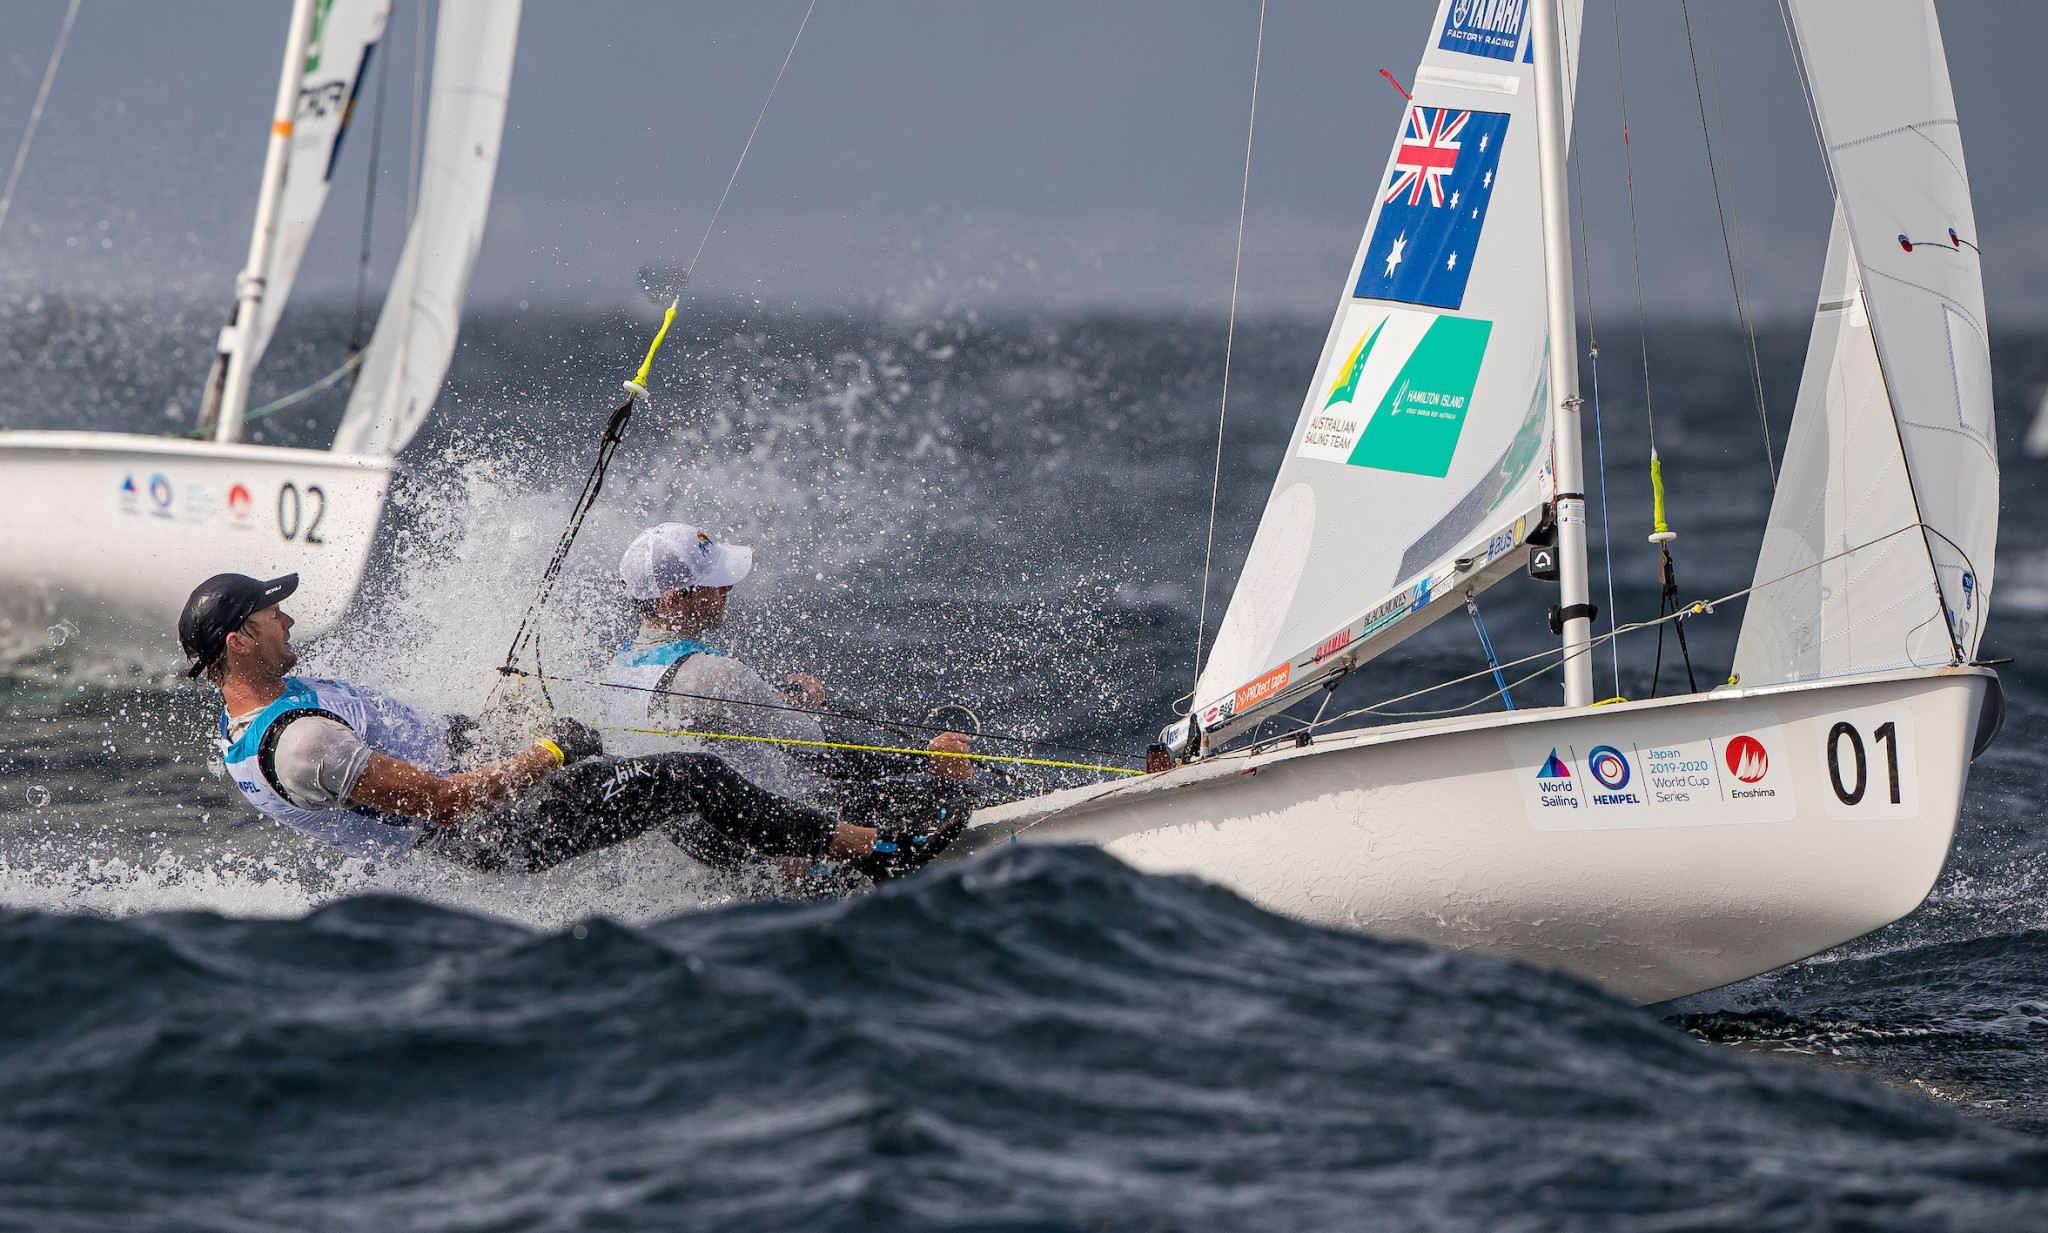 Mat Belcher and Will Ryan took control in the men's 470 ©World Sailing